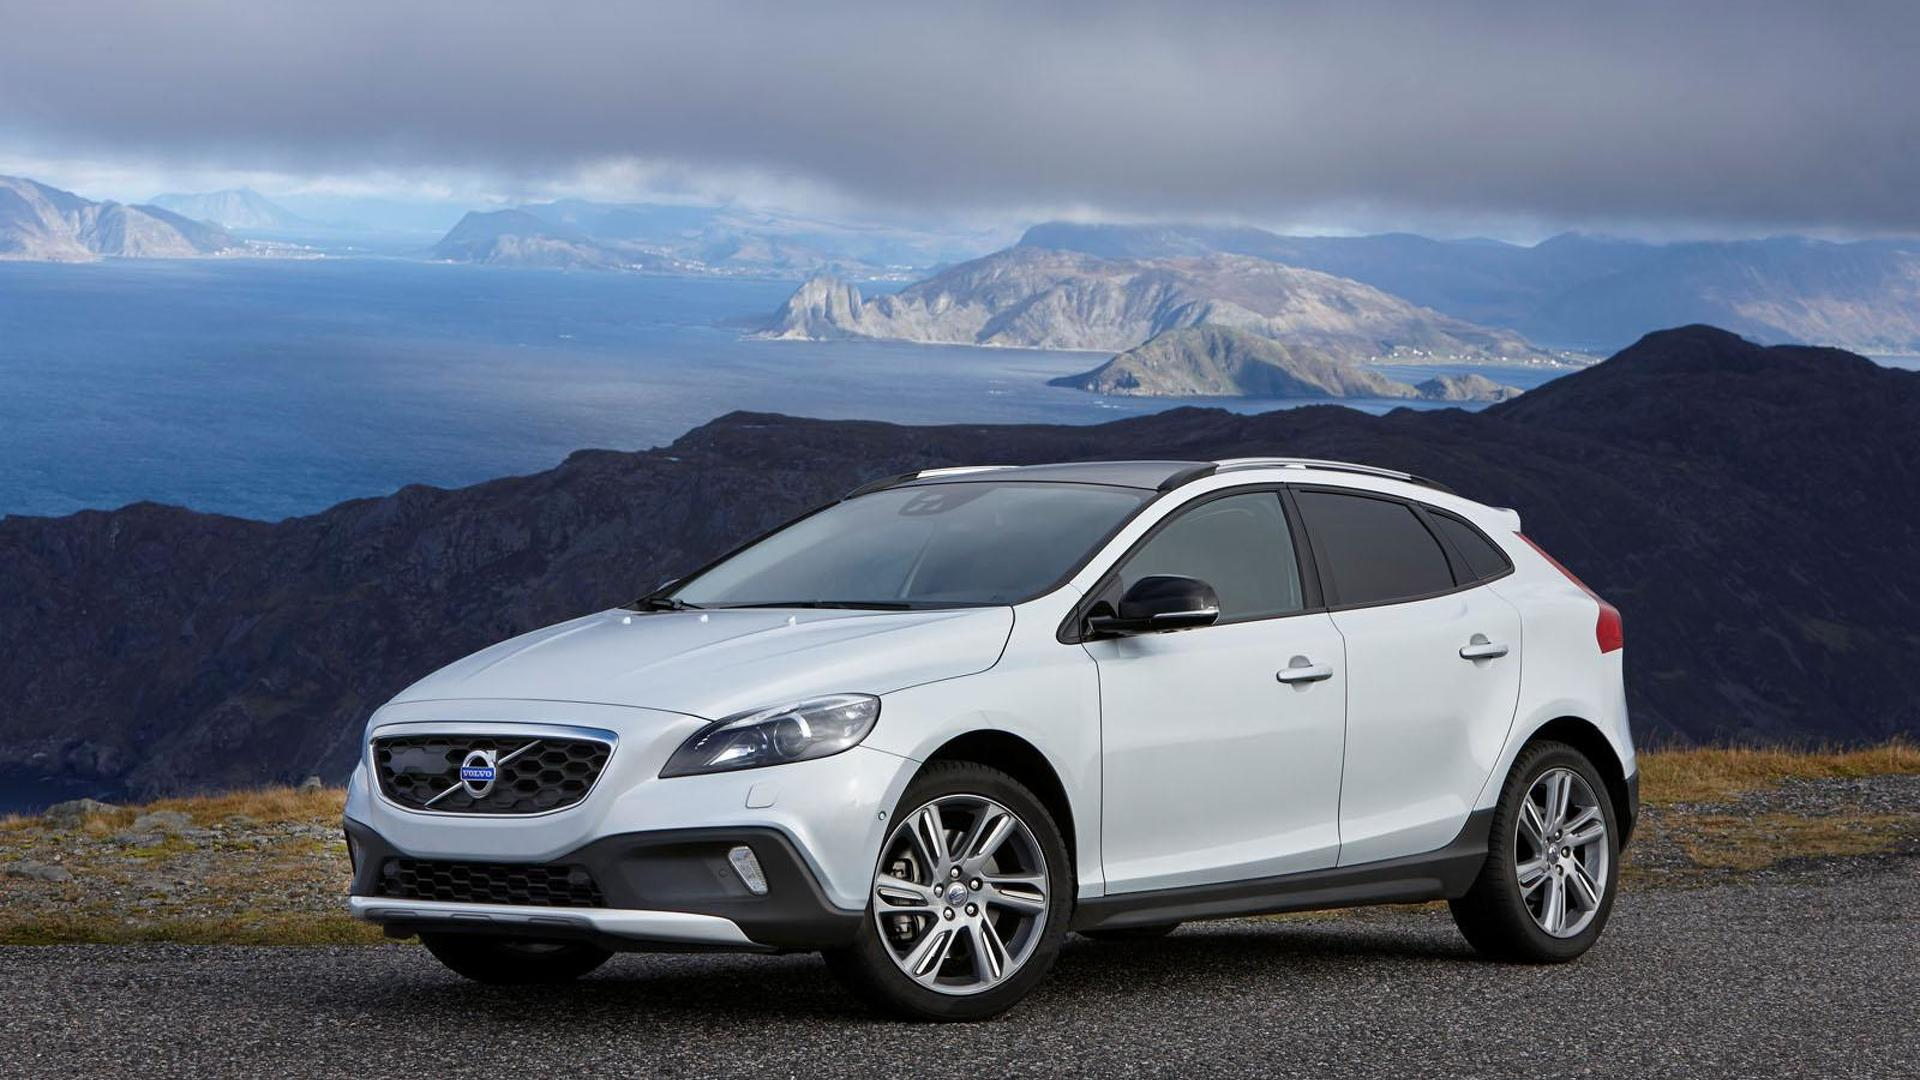 Volvo V40 Cross Country gains a new T5 engine & all-wheel drive